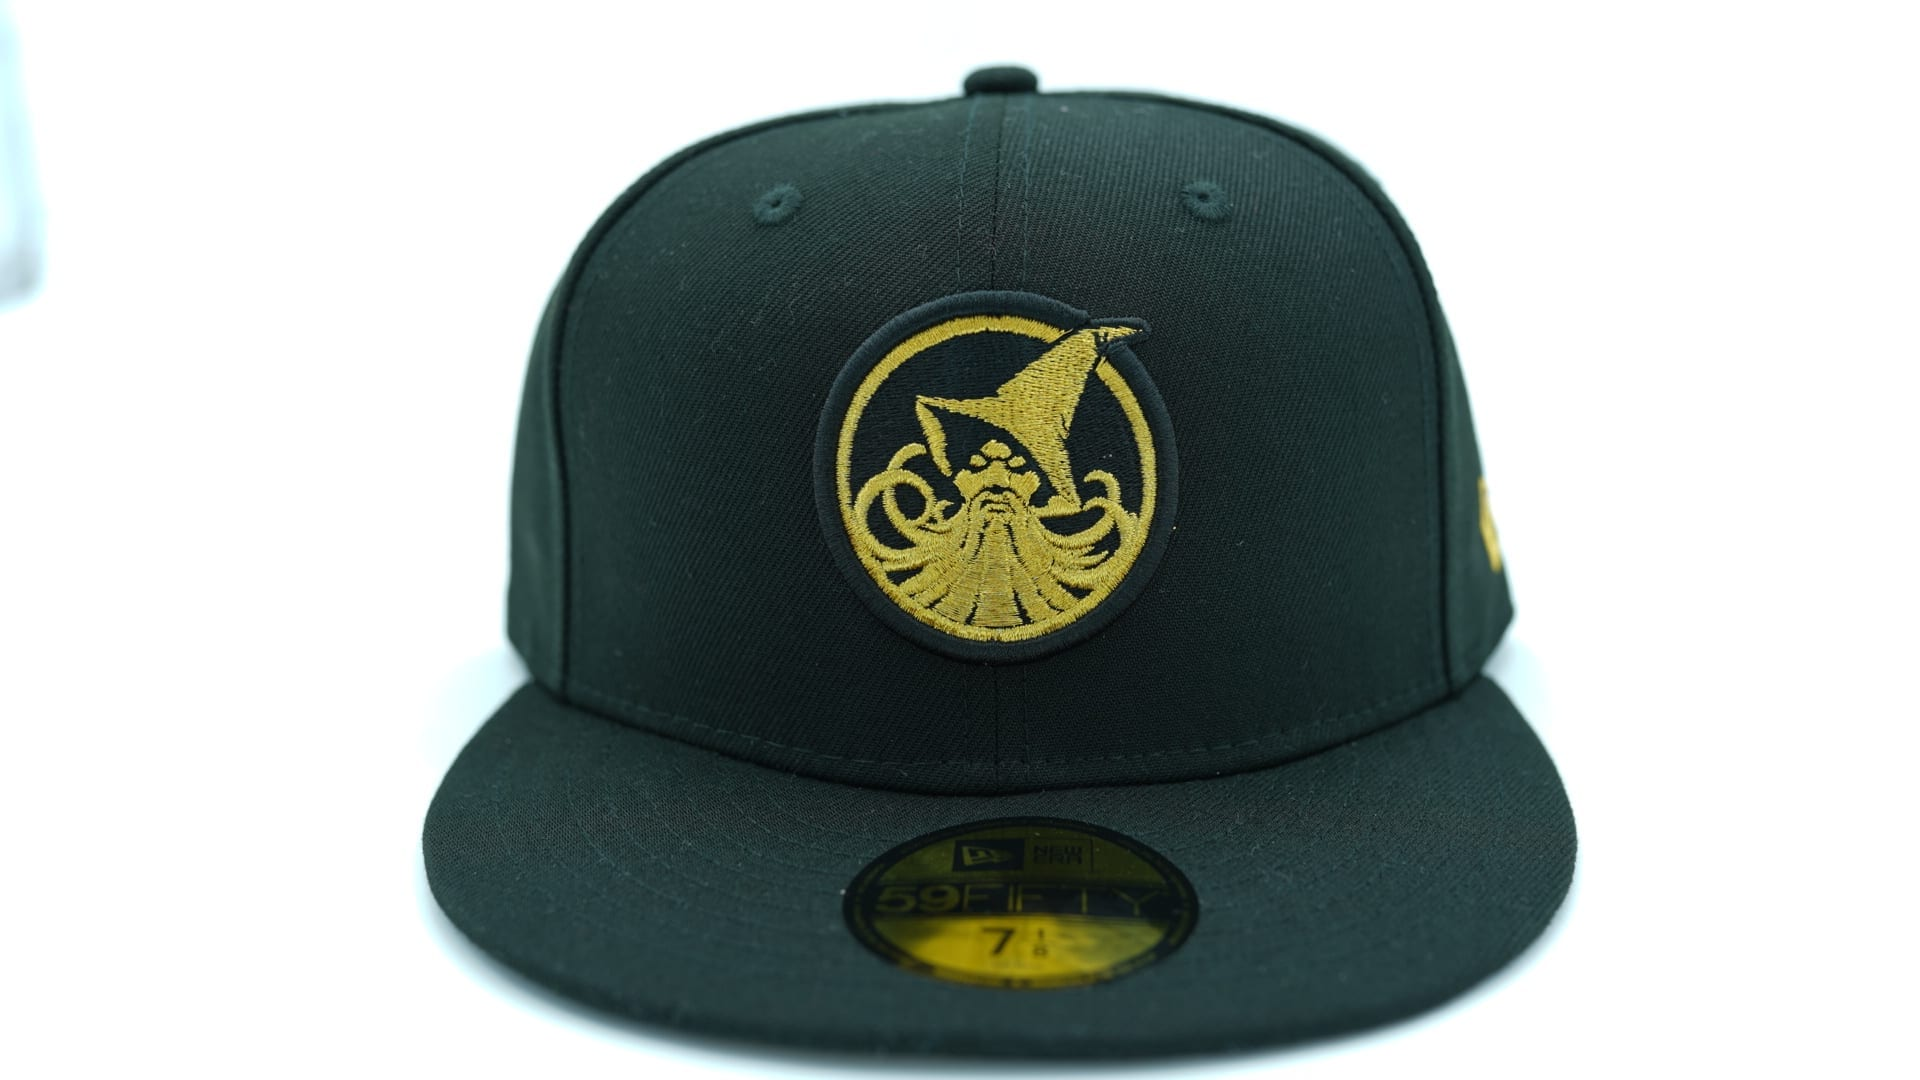 wolverine classic costume armor 59fifty fitted baseball cap marvel new era 1